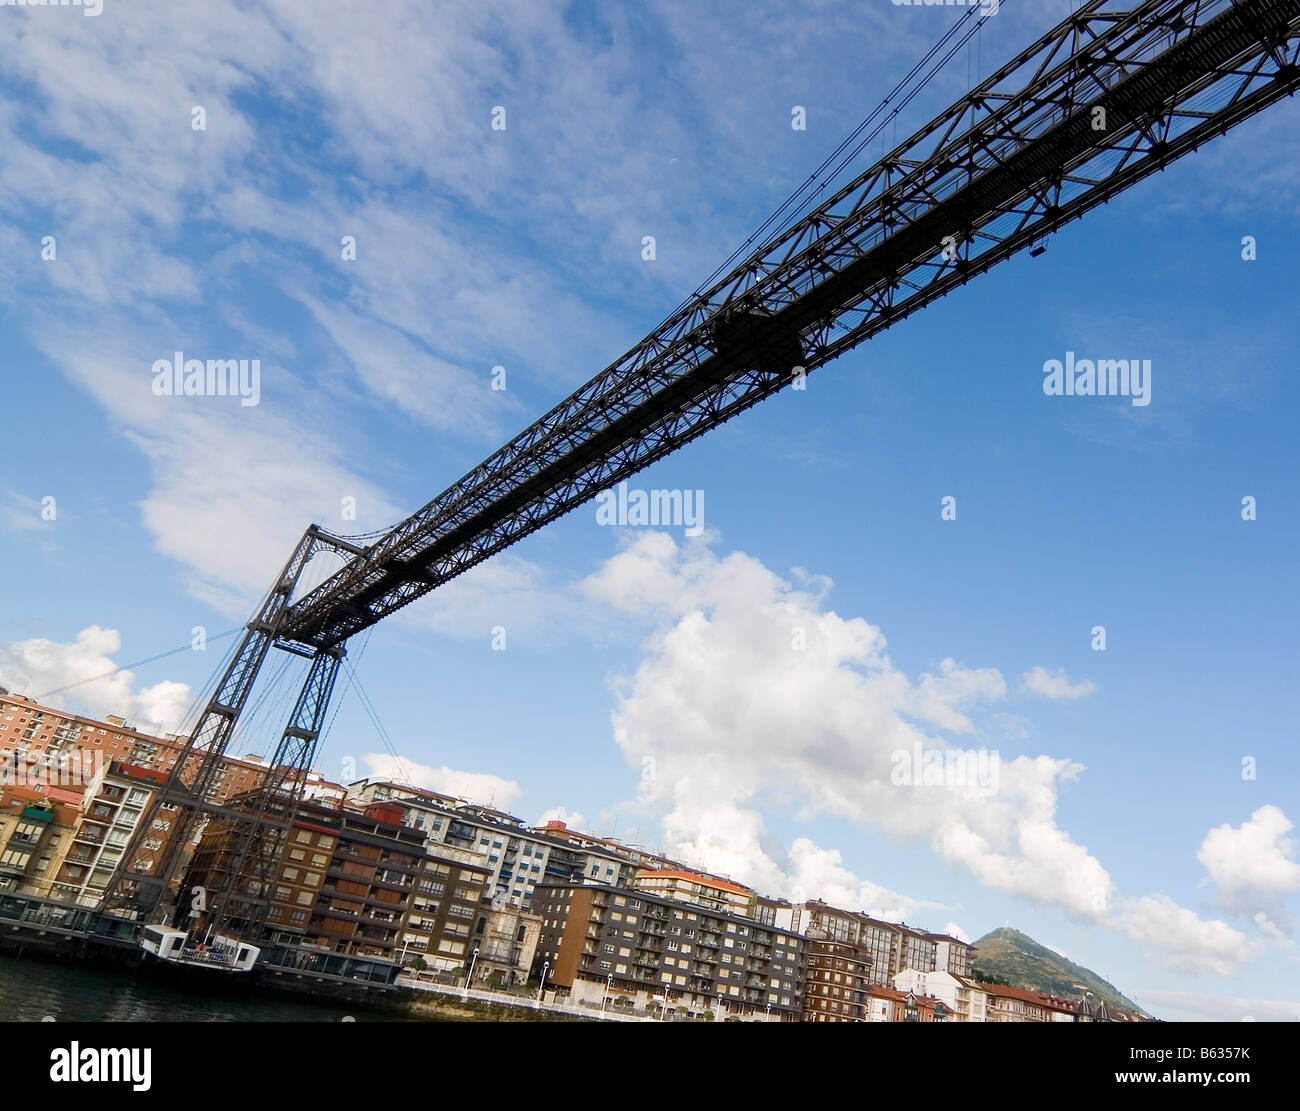 hanging bridge of portugalete is the oldest hanging bridge of the world and it is unesco patrimony of humanity - Stock Image